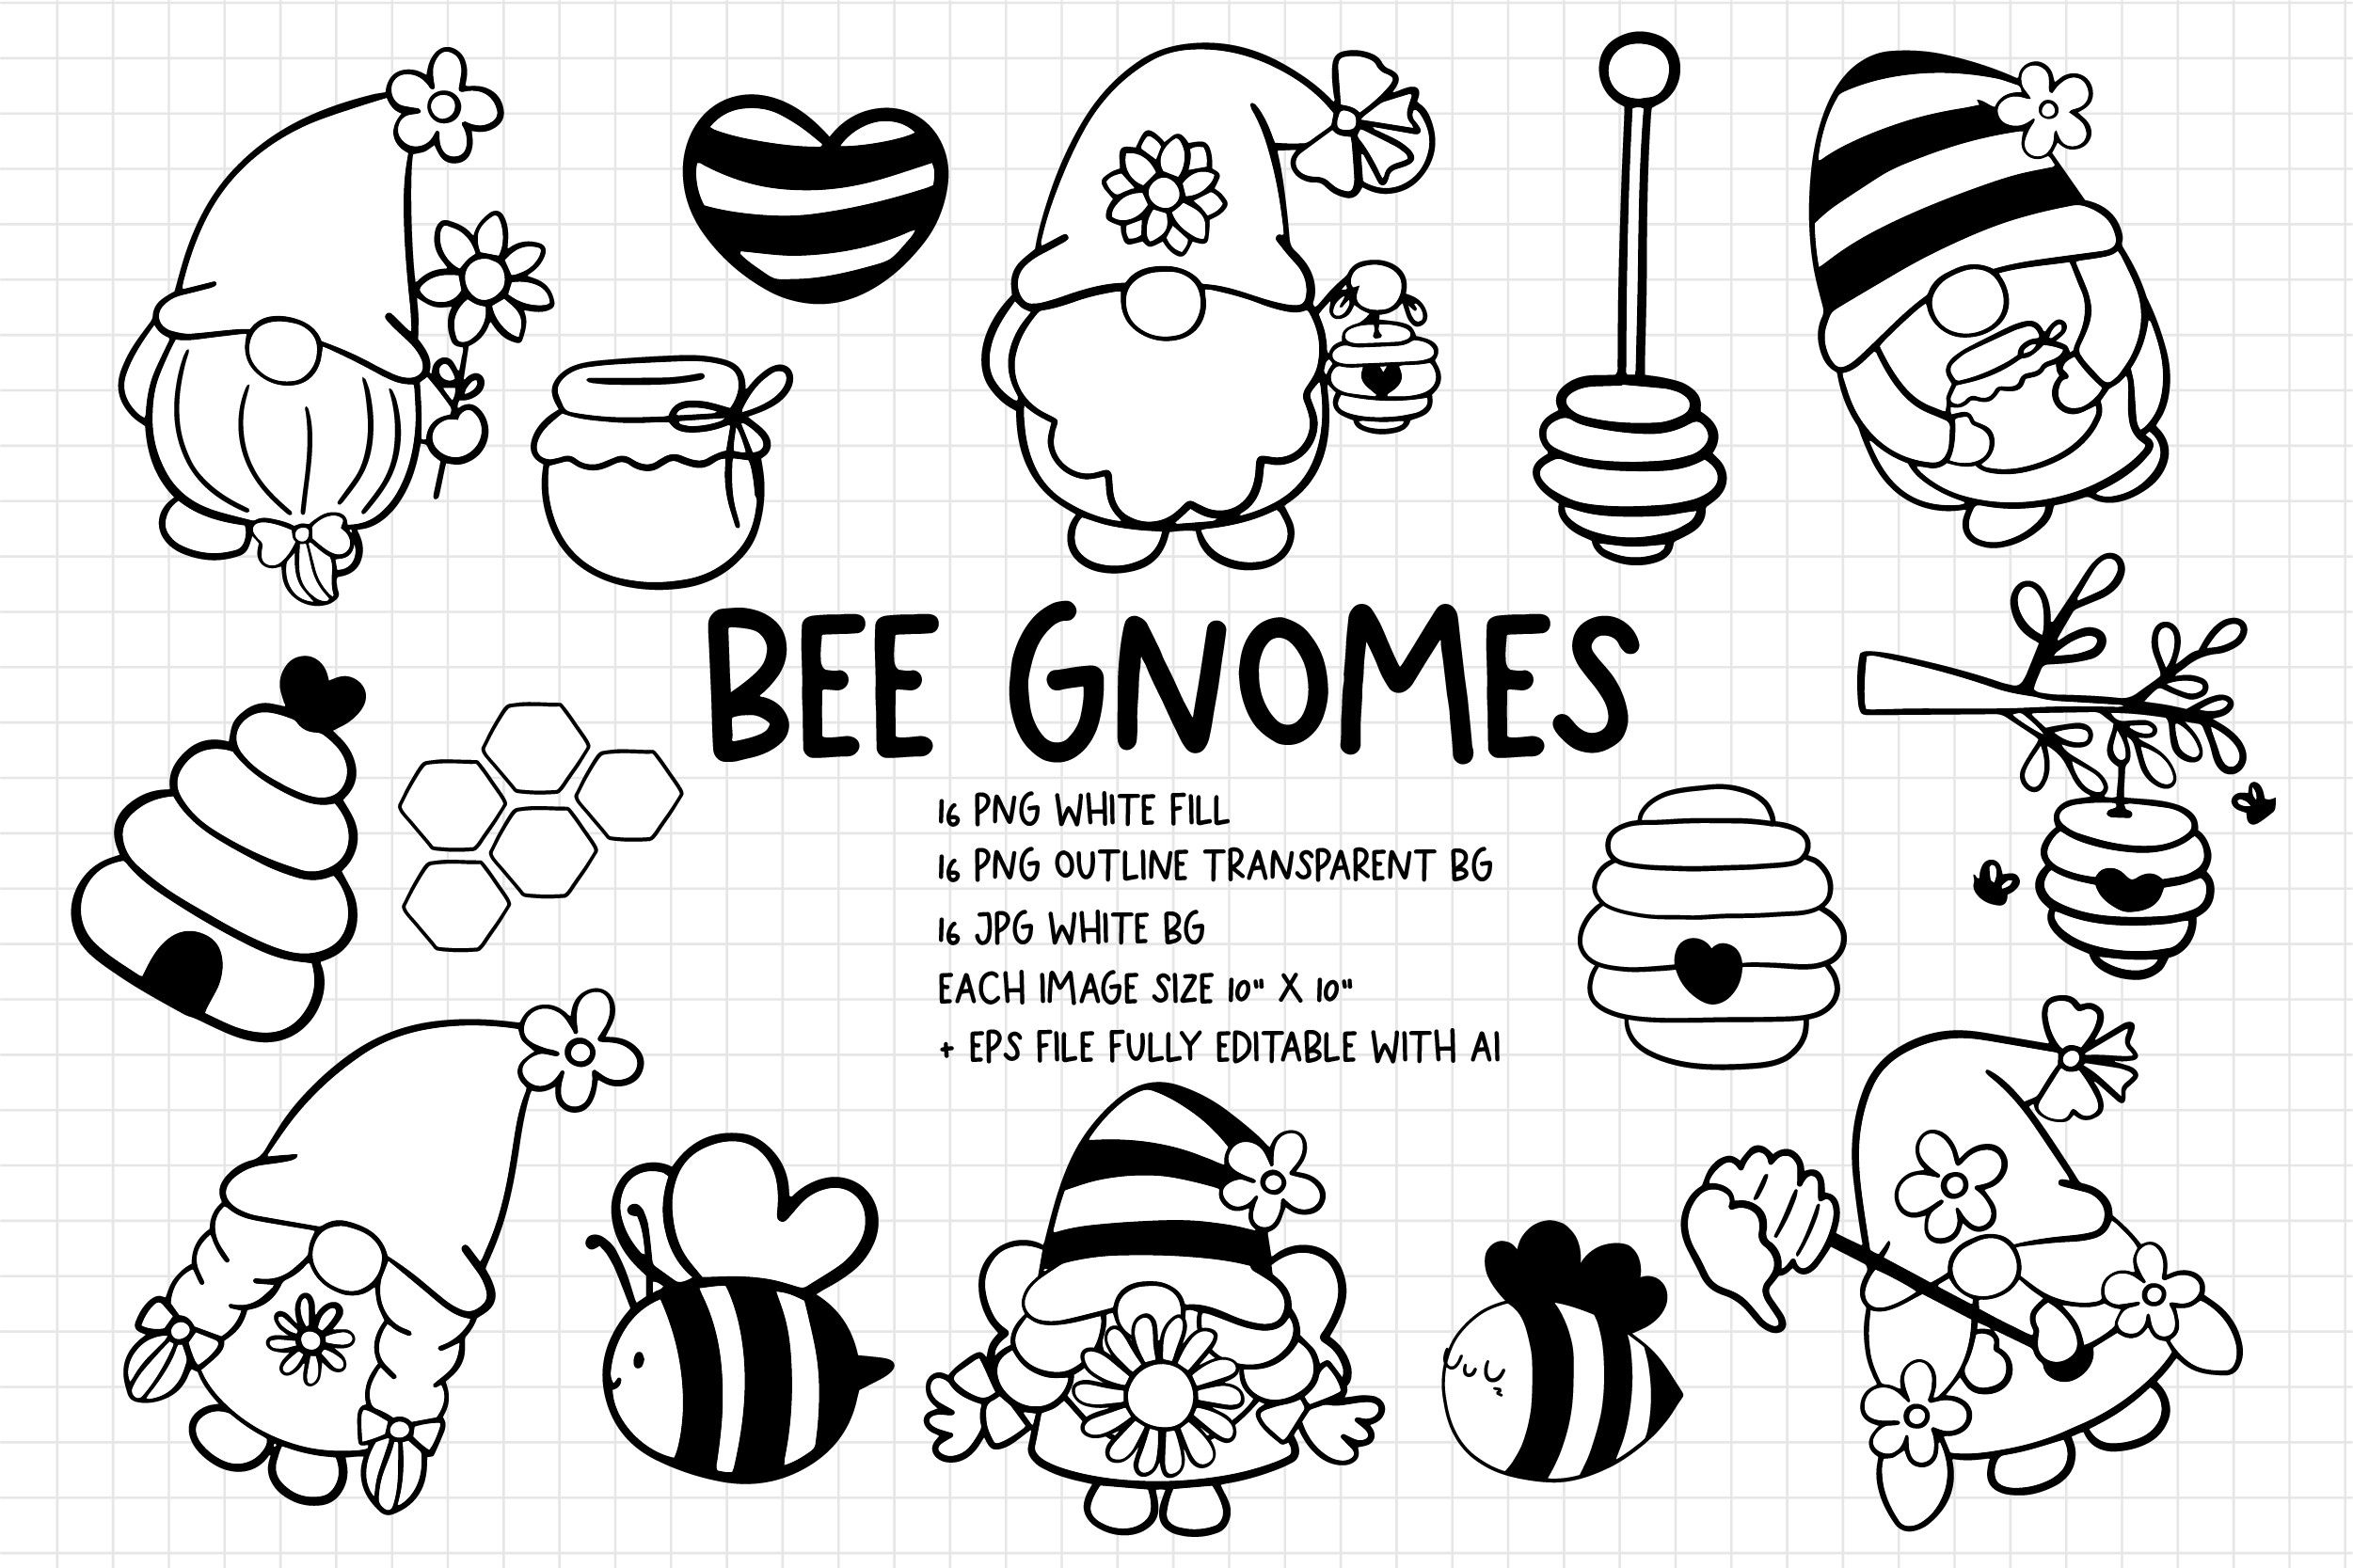 Bee Gnomes Digital Stamps, Coloring Page SVG File